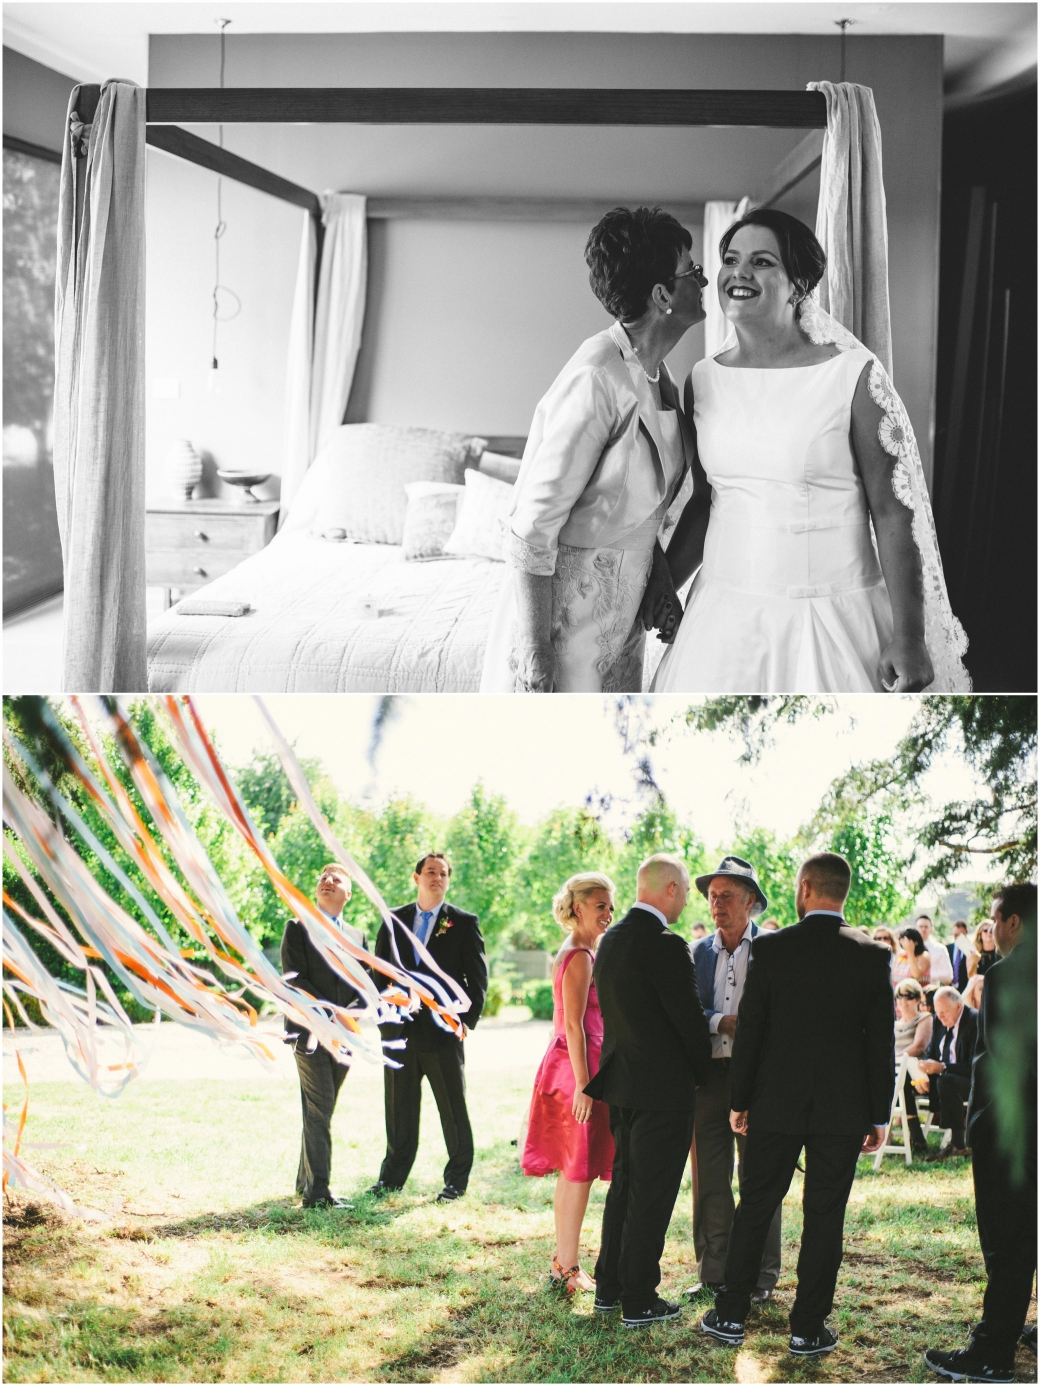 Melbourne wedding photographer aghadoe estate country victorian wedding DIY wedding pomp and splendour flowers hyggelig photography melbourne wedding photographer30